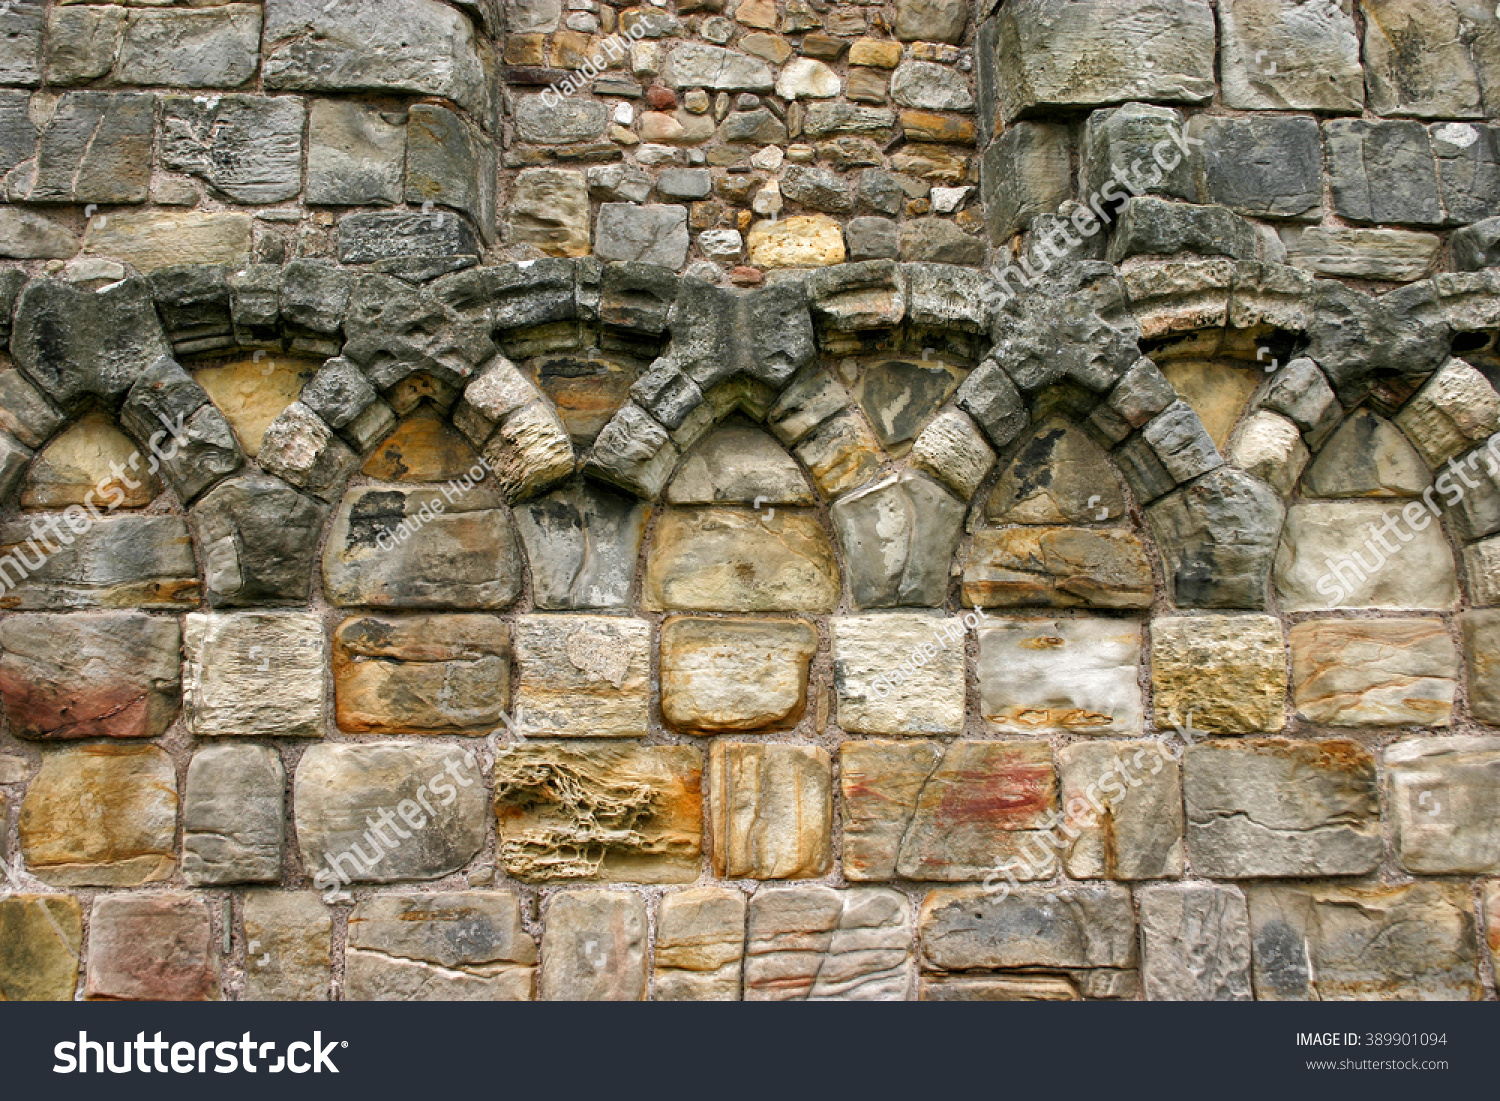 Part of a stone wall at the ruins of Saint Andrews cathedral, a ruined Roman Catholic cathedral in St Andrews, Scotland